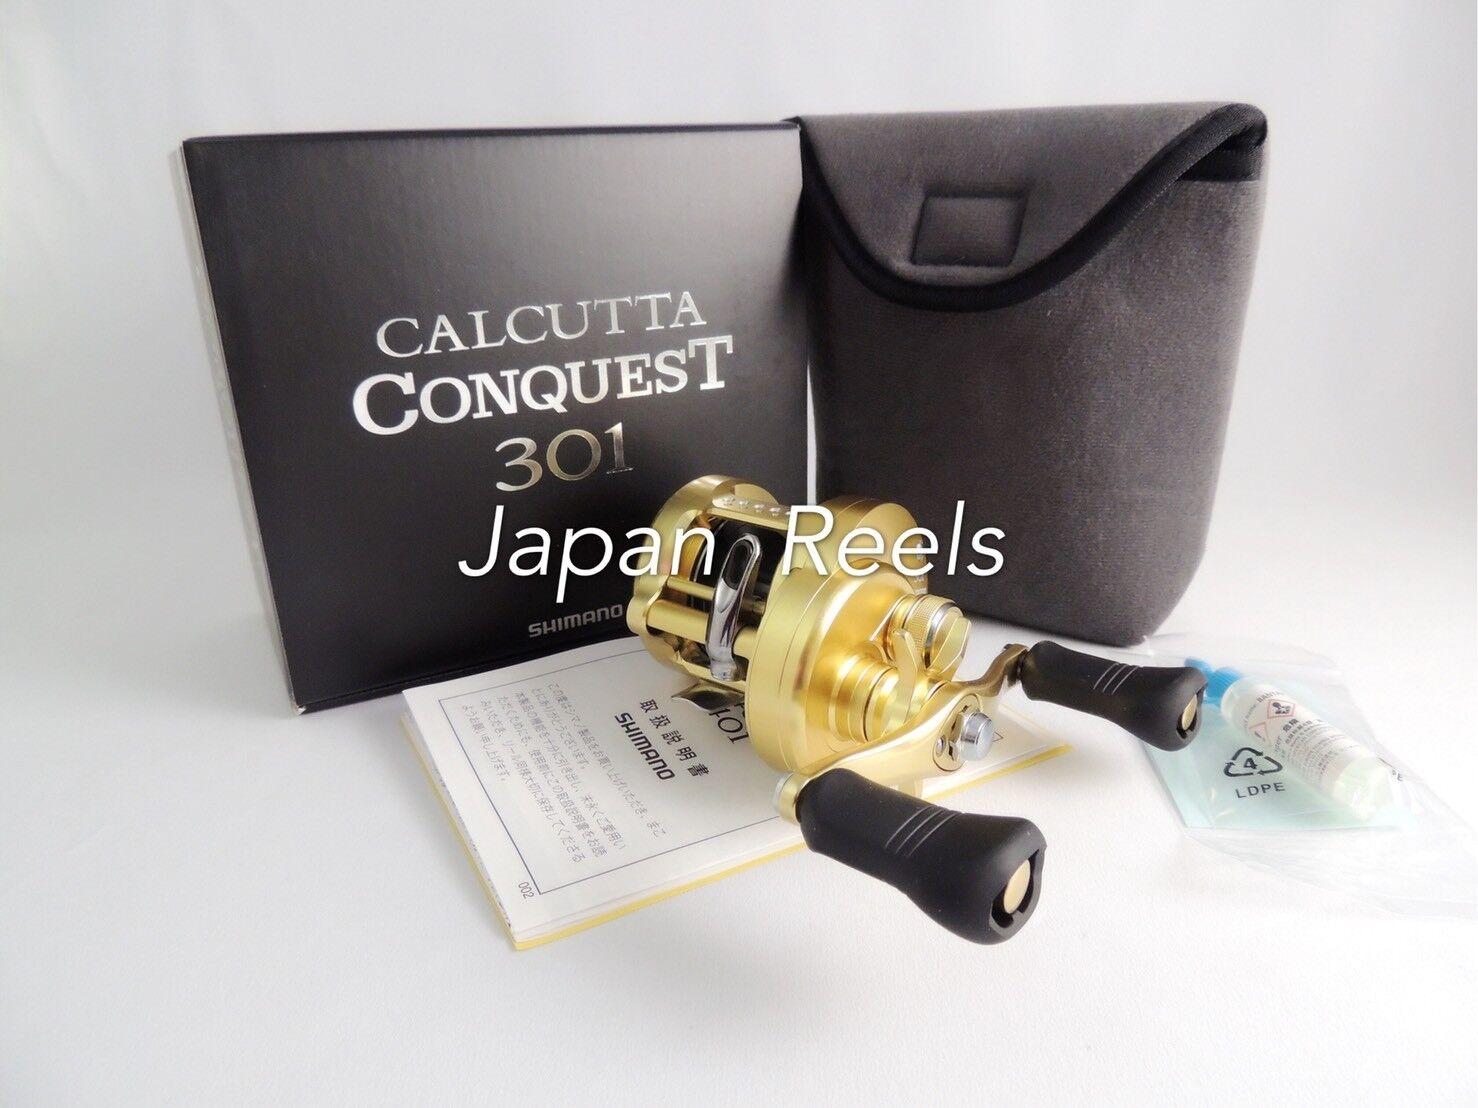 NEW SHIMANO 18 CALCUTTA CONQUEST 301 LEFT HANDLE REEL 1-3 DAYS FAST DELIVERY